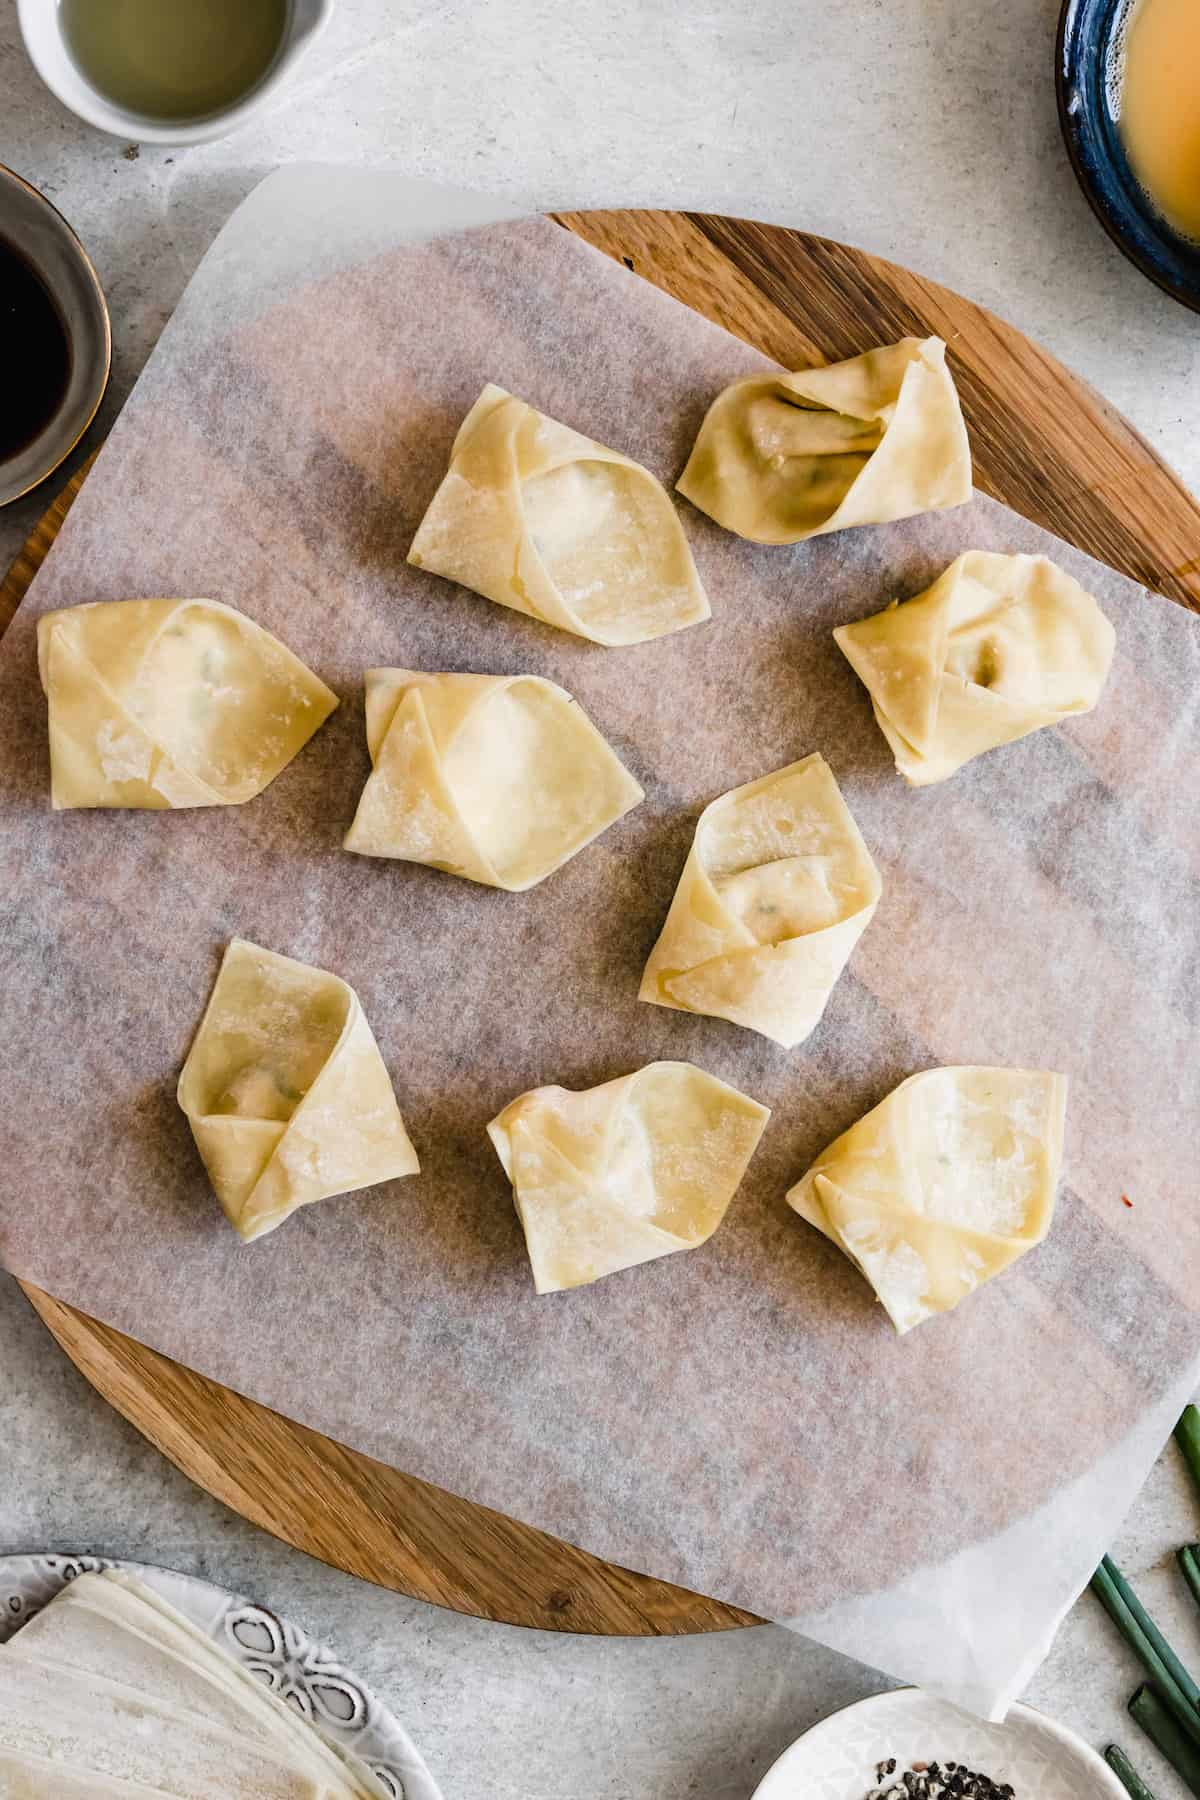 Filled and wrapped wonton wrappers and set on a cutting board.